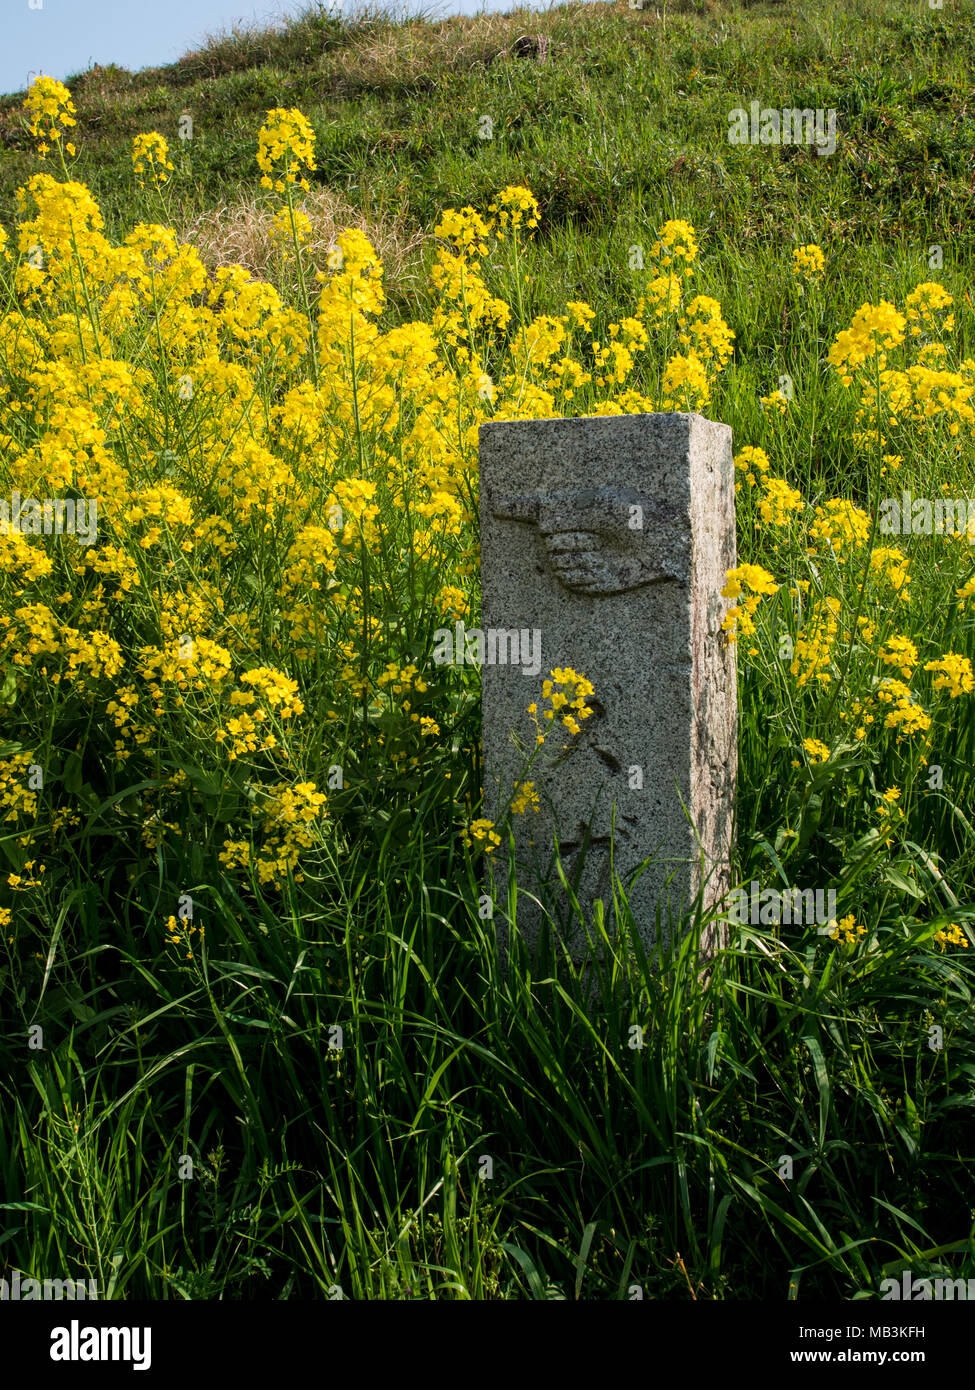 Stone guide post,  route marker, in a field of flowers, on Route 56 between Uwa and Ozu, 88 Temple Shikoku pilgrimage, Shikoku, Japan - Stock Image